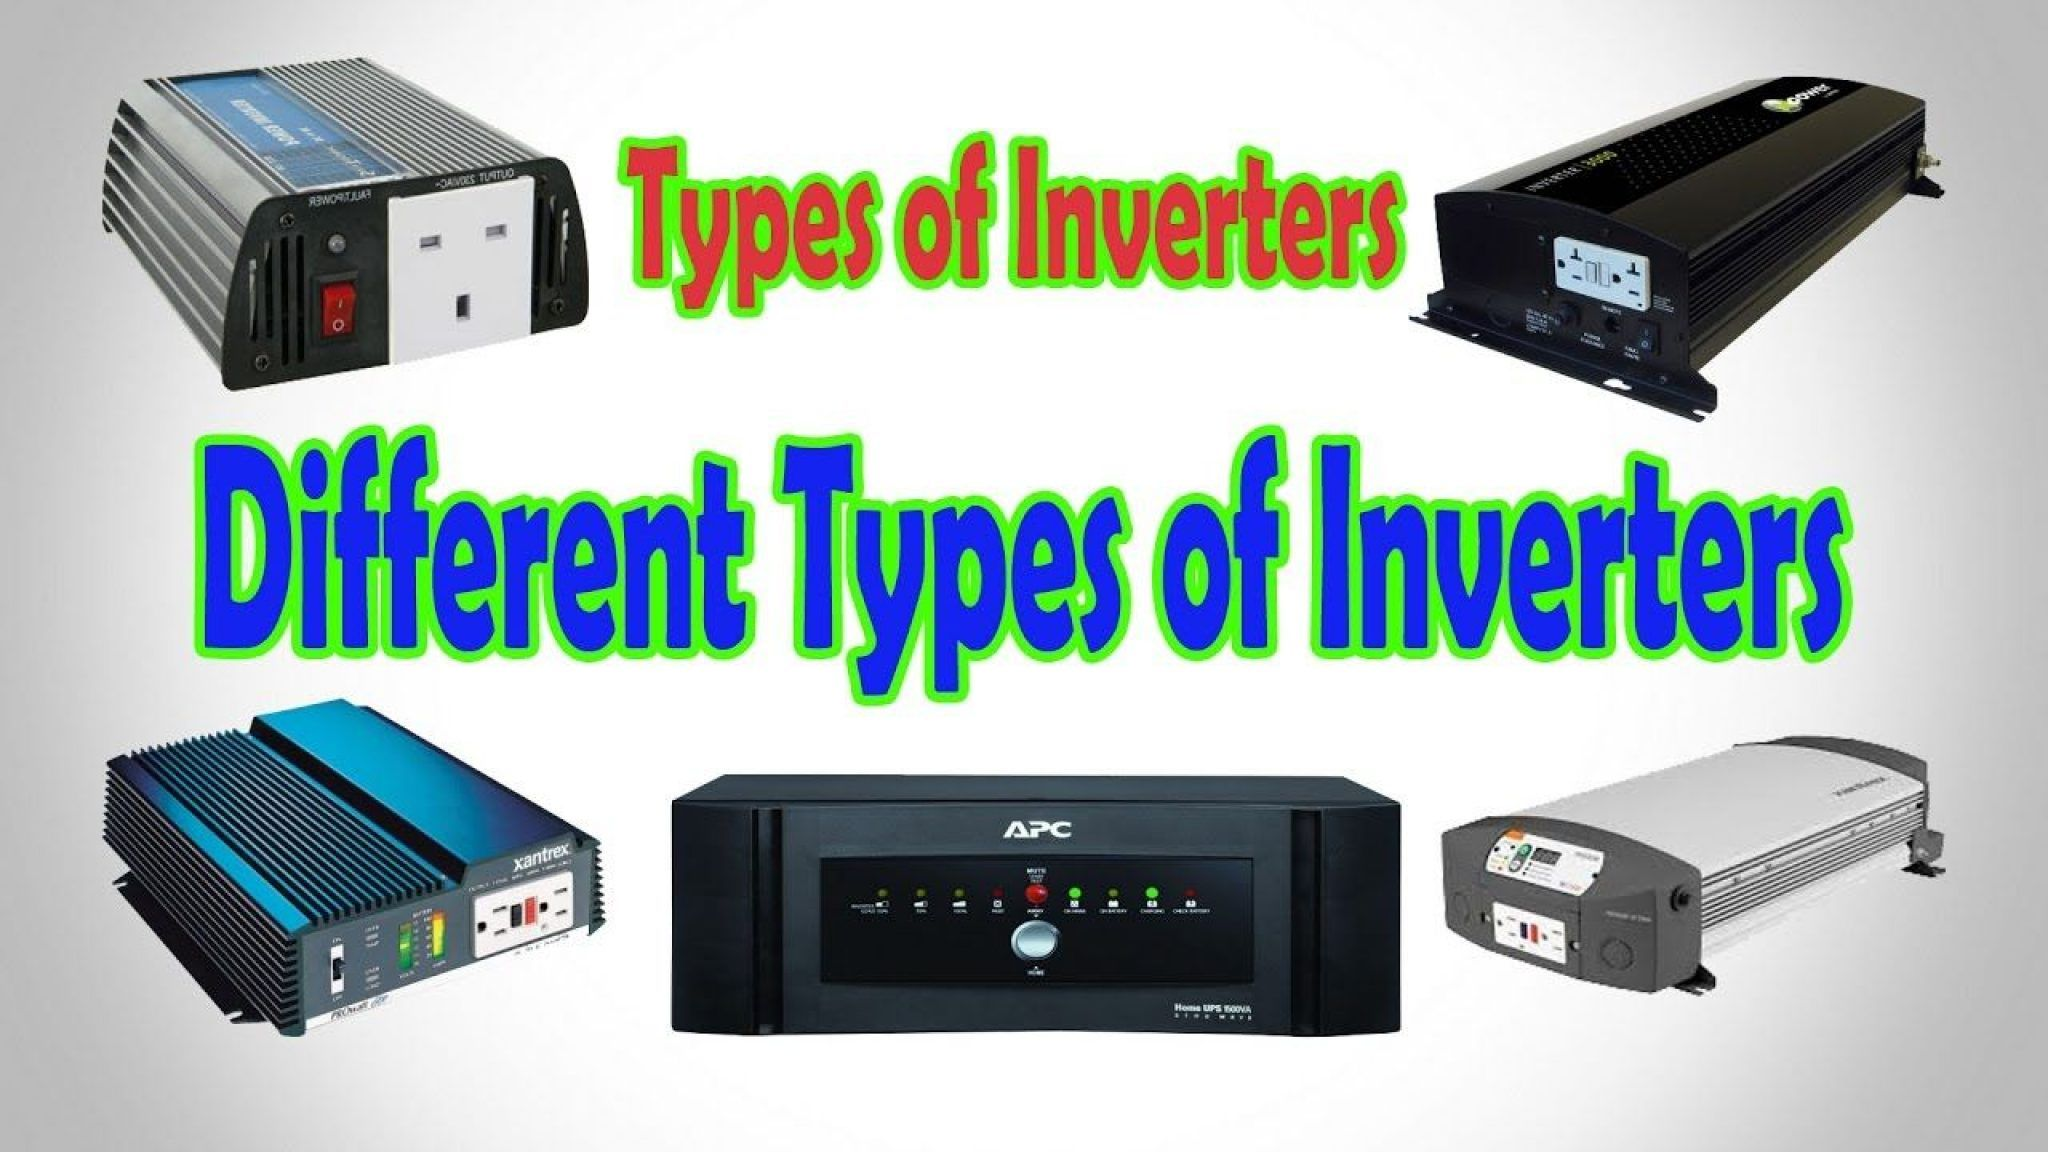 Types of Inverters & Their Applications